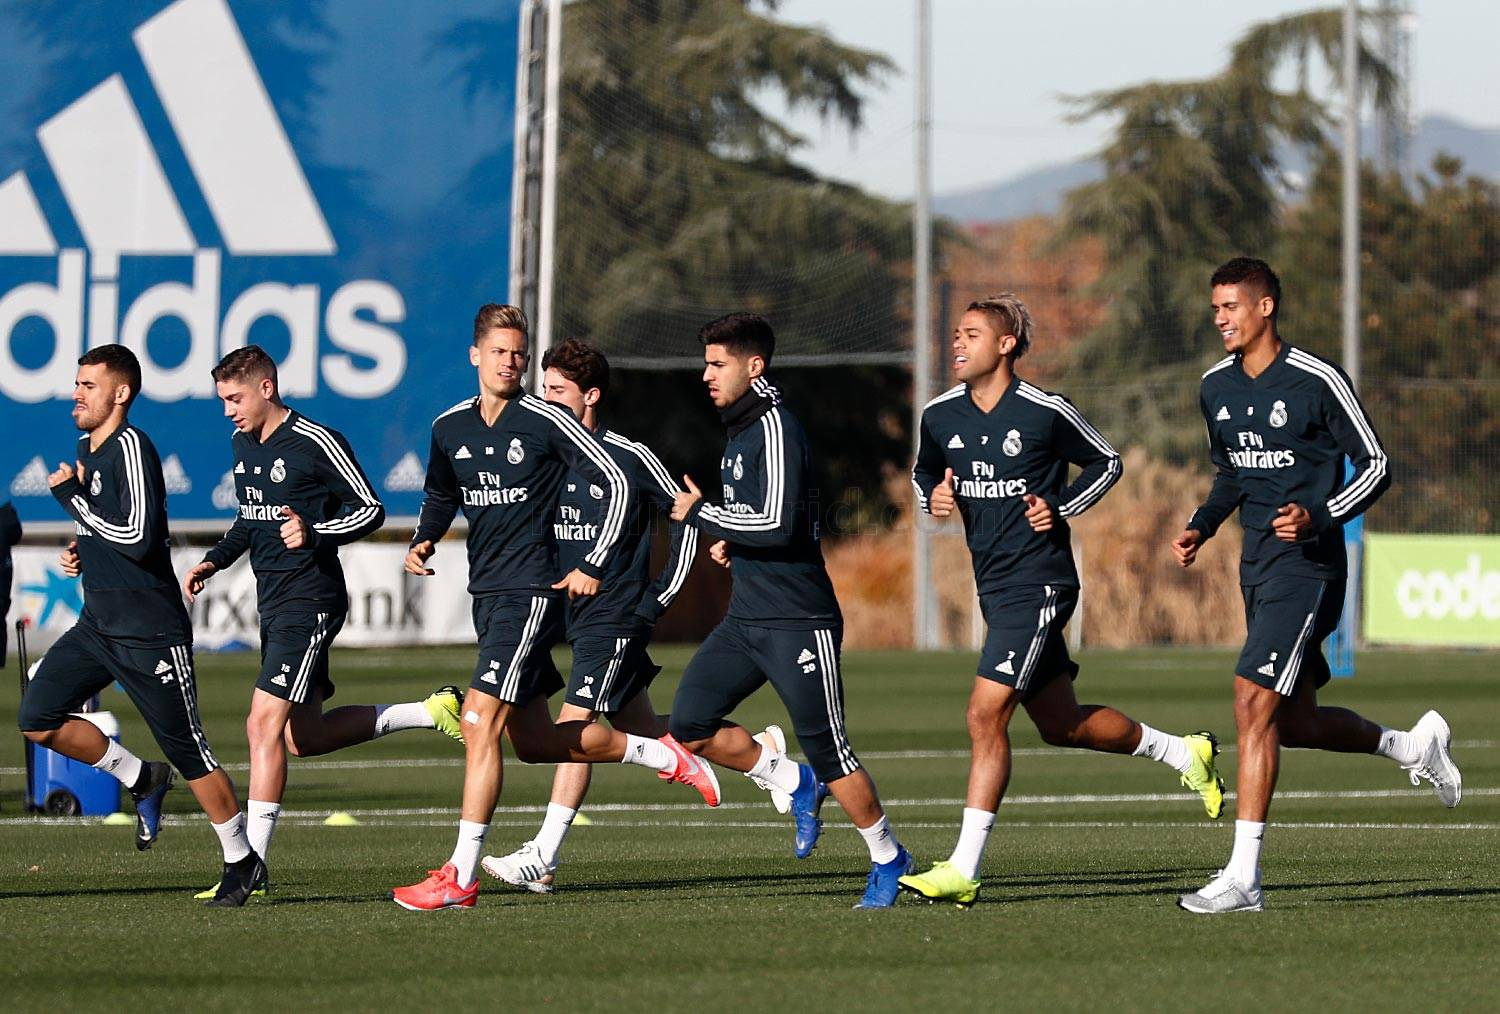 Real Madrid - Entrenamiento del Real Madrid - 10-12-2018